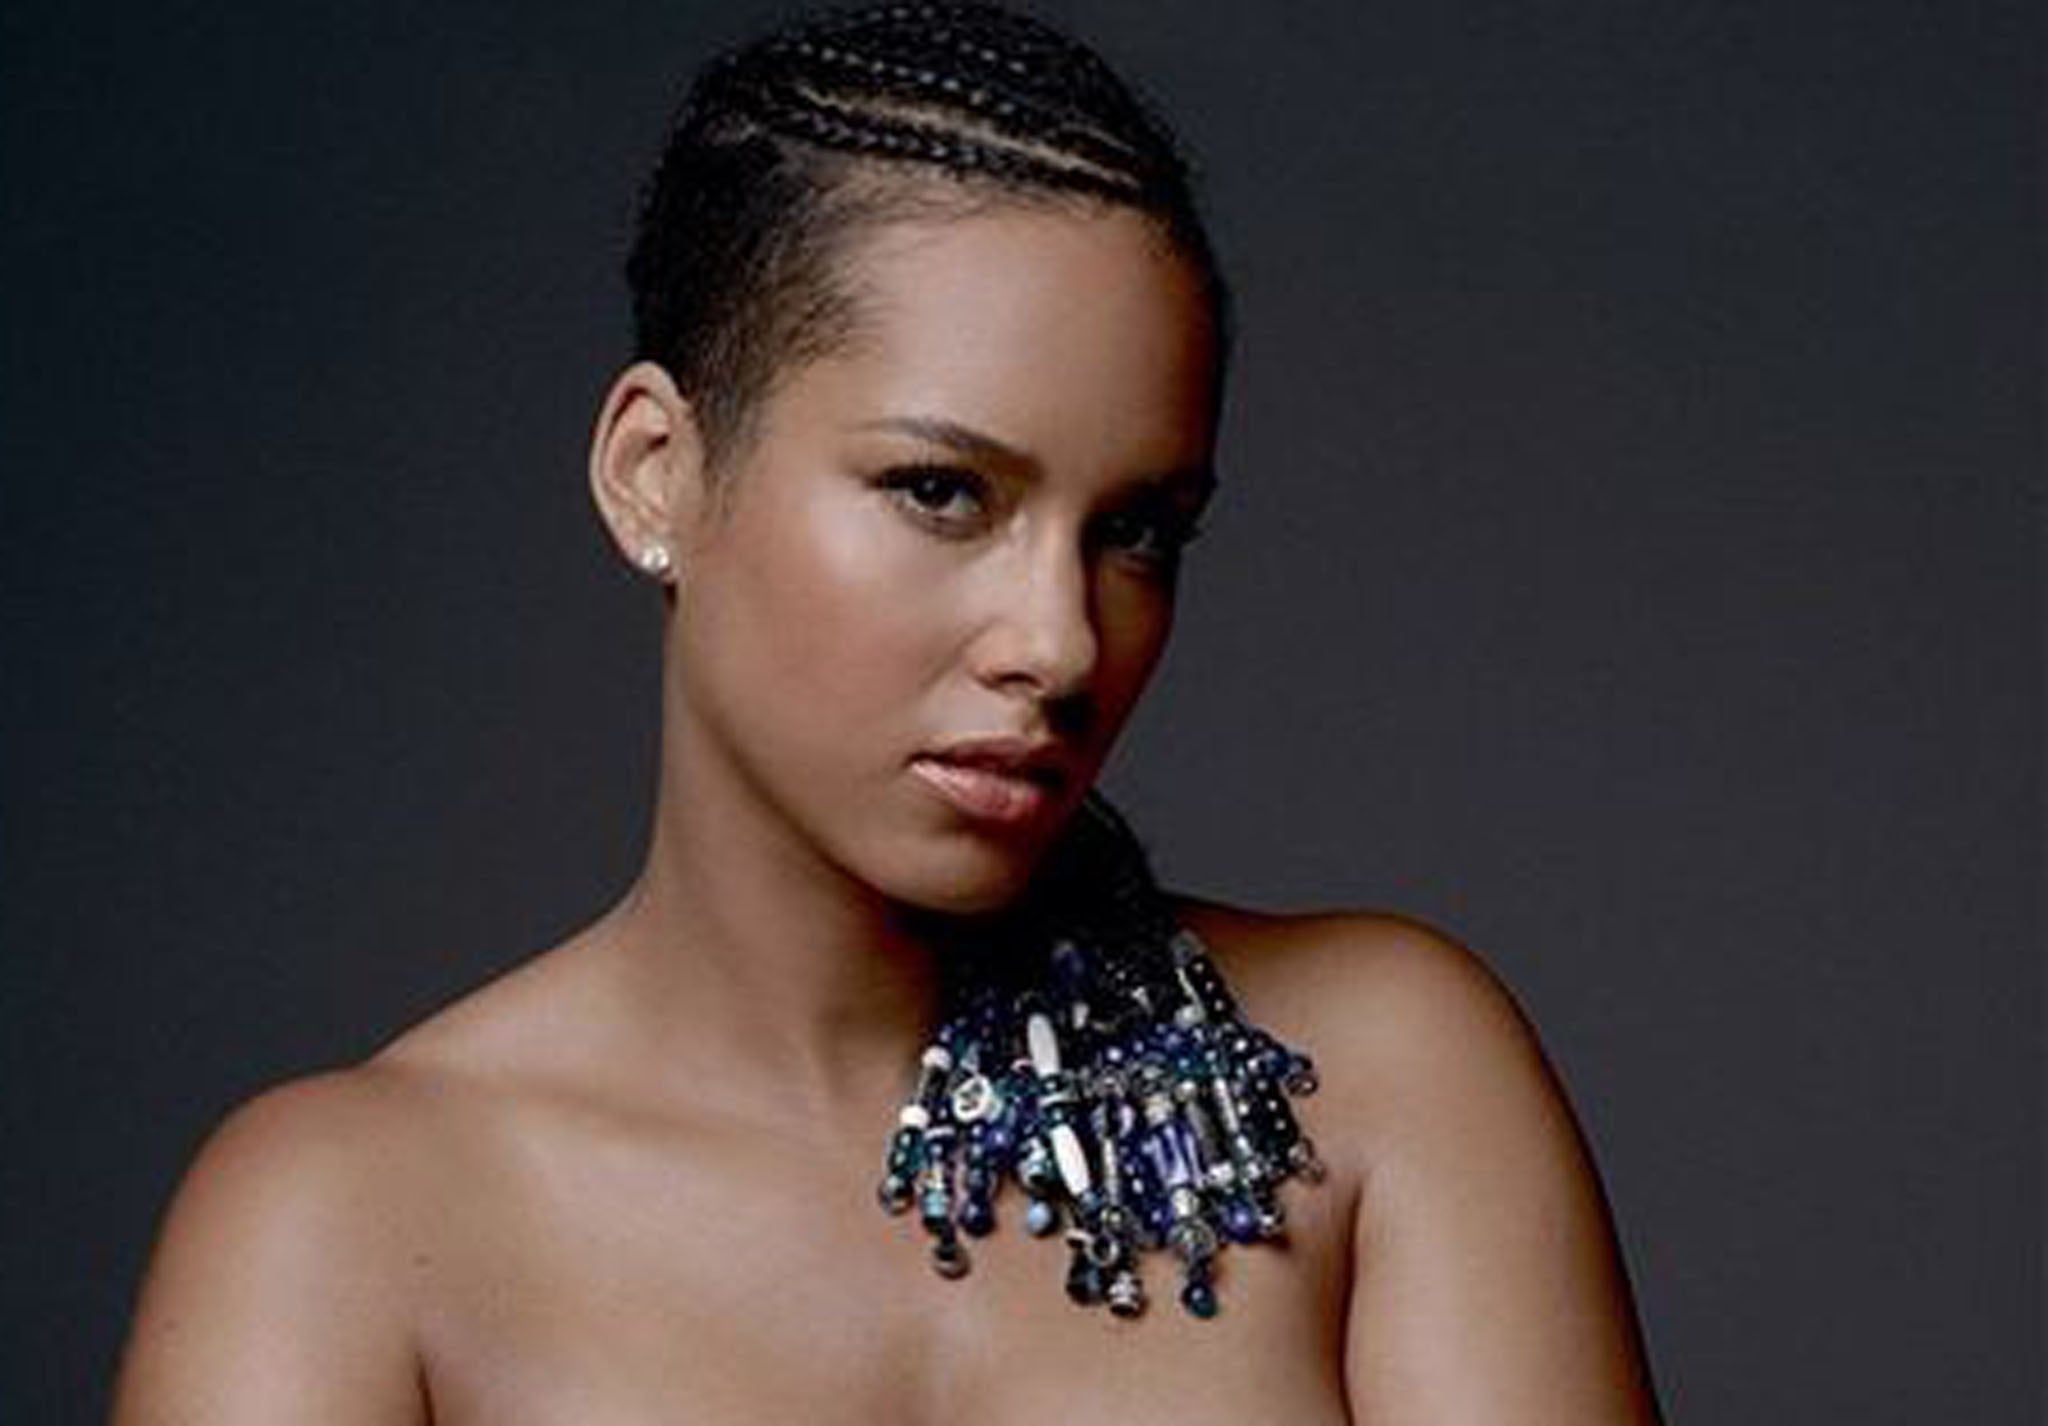 Pregnant Alicia Keys Poses Completely Nude for Charity  See the     Alicia Keys Nude Taylor Hill  Getty Images  Alicia Keys